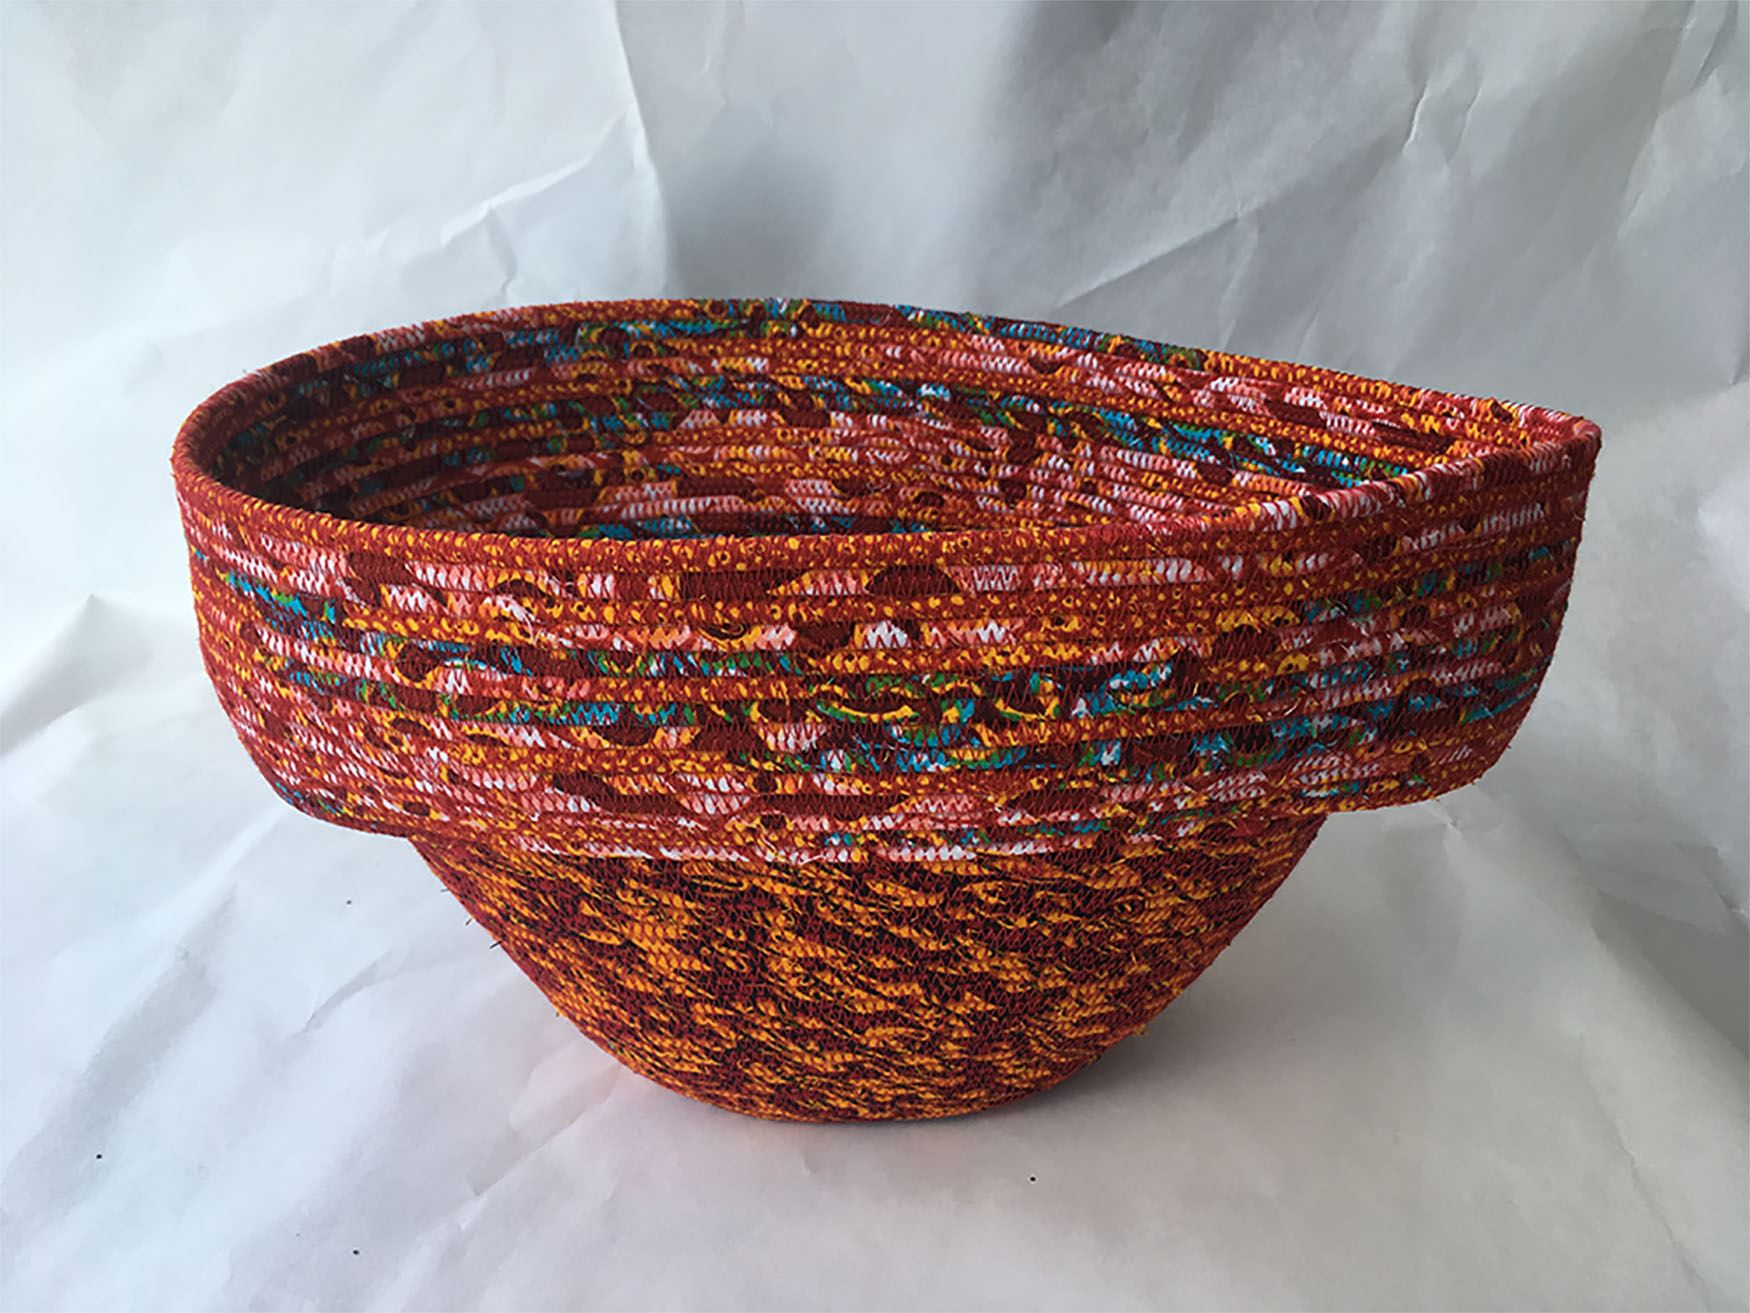 Photo of a coiled fabric, medium sized basket in red with blotches of green and blue by artists Norm